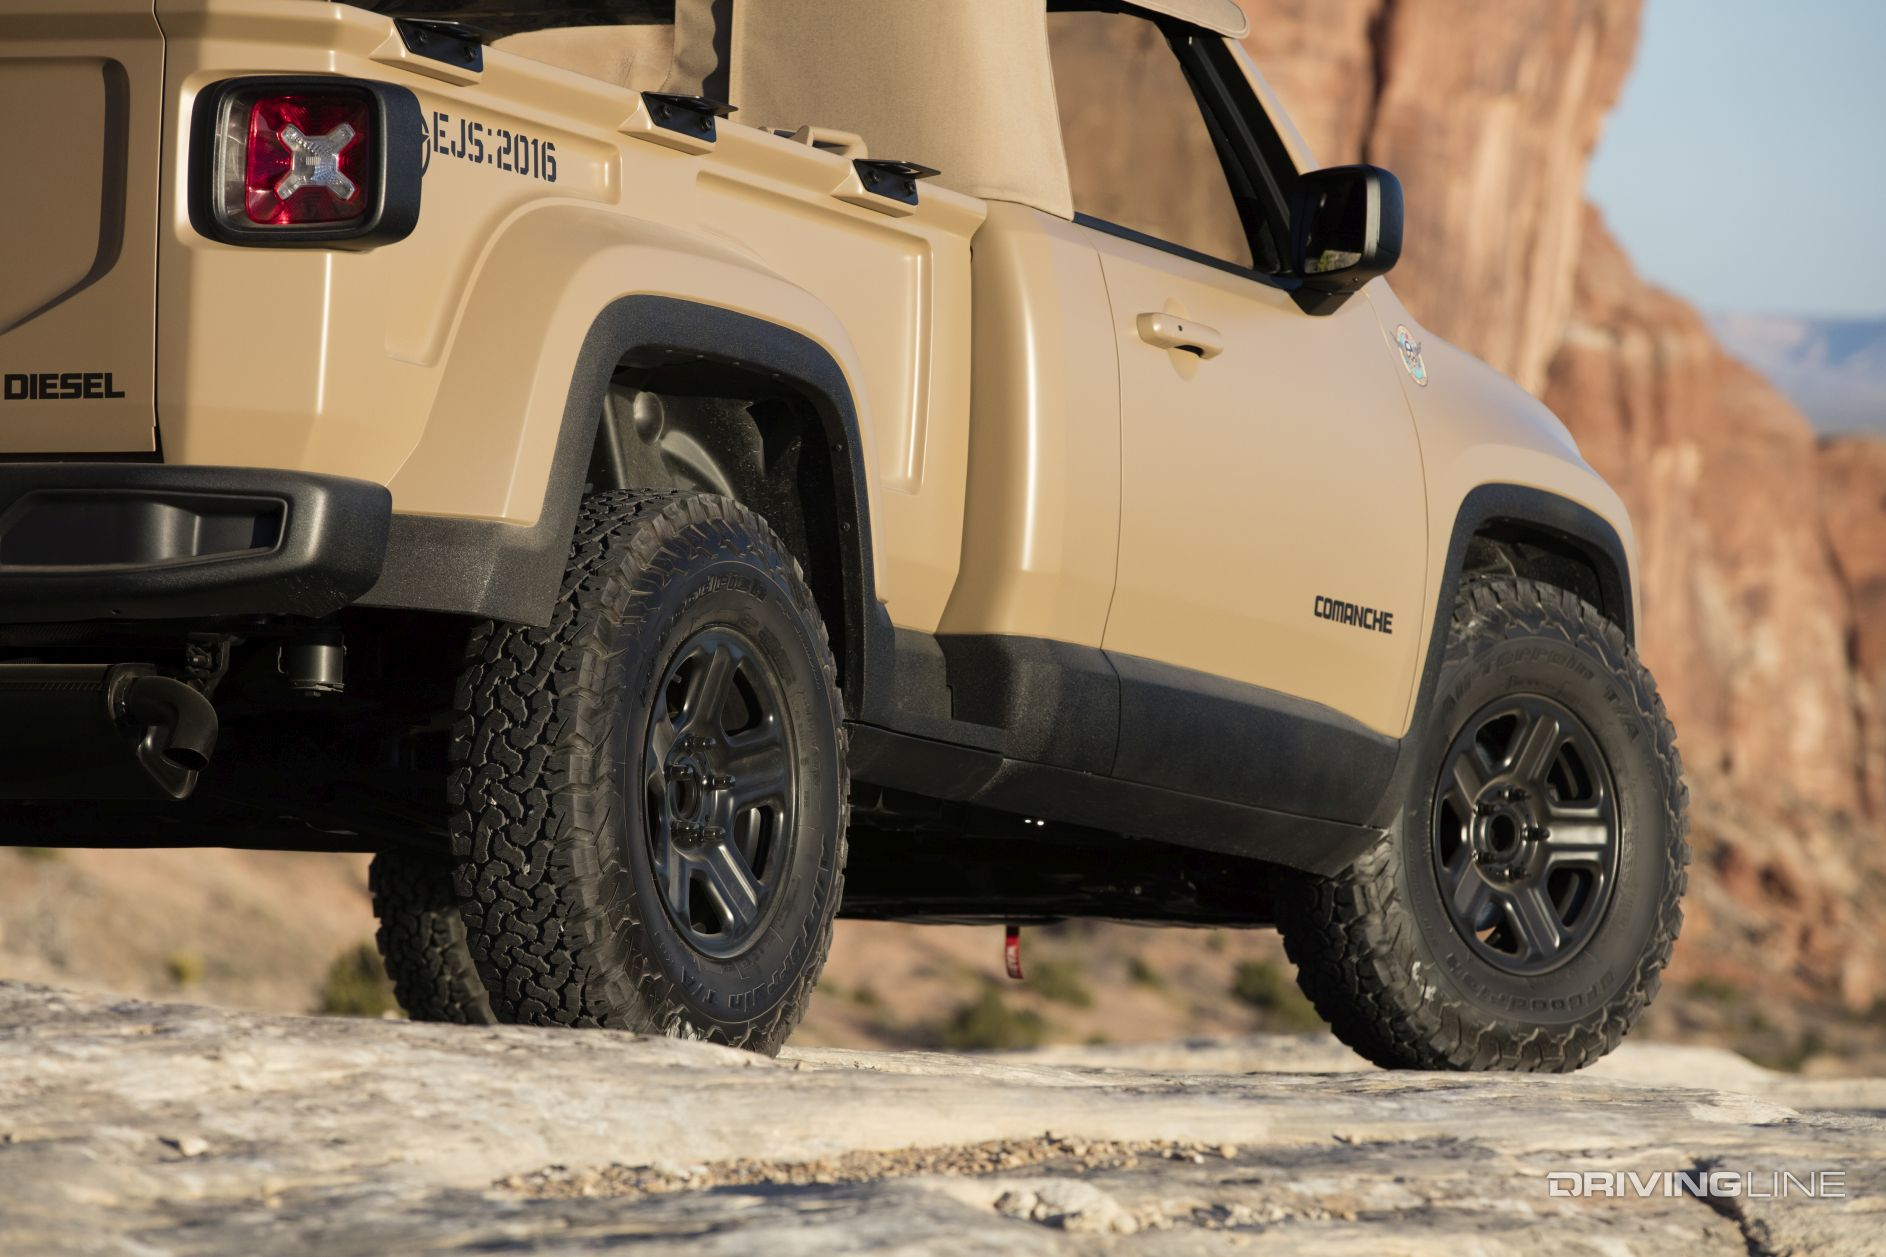 2016 Jeep Comanche Concept [Video] | DrivingLine